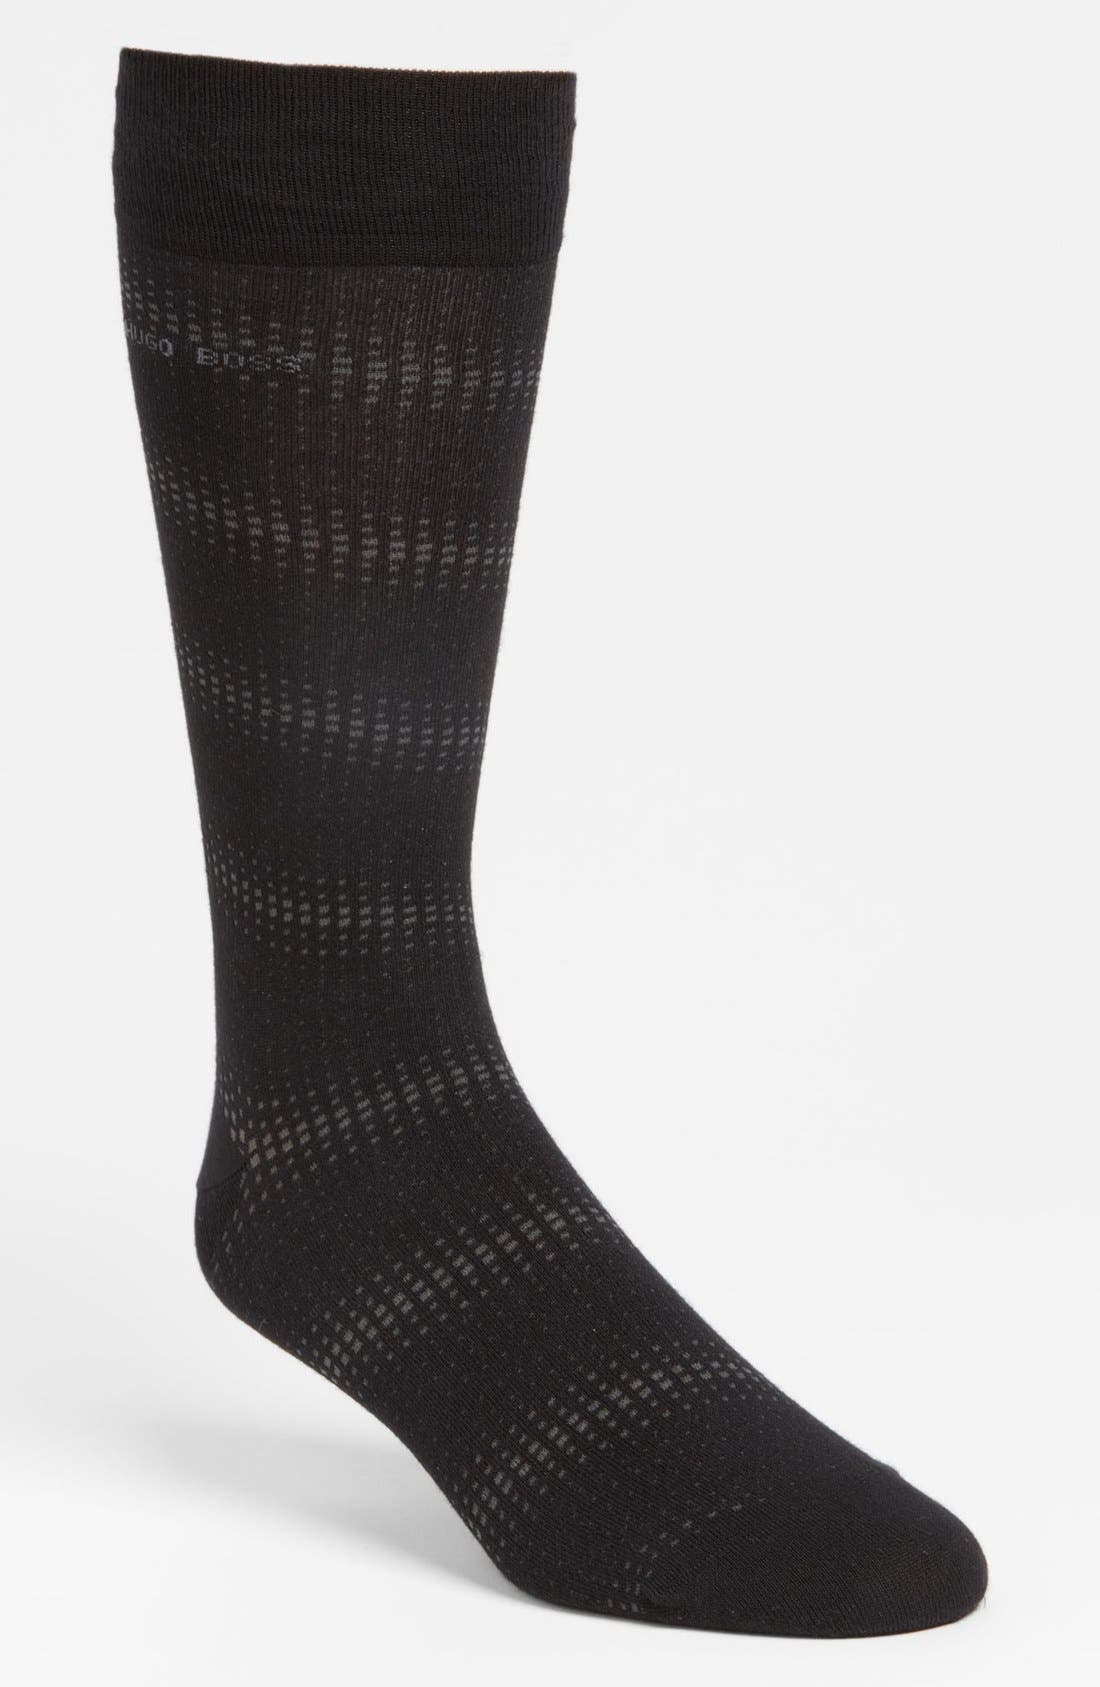 Main Image - BOSS Black Cotton Blend Socks